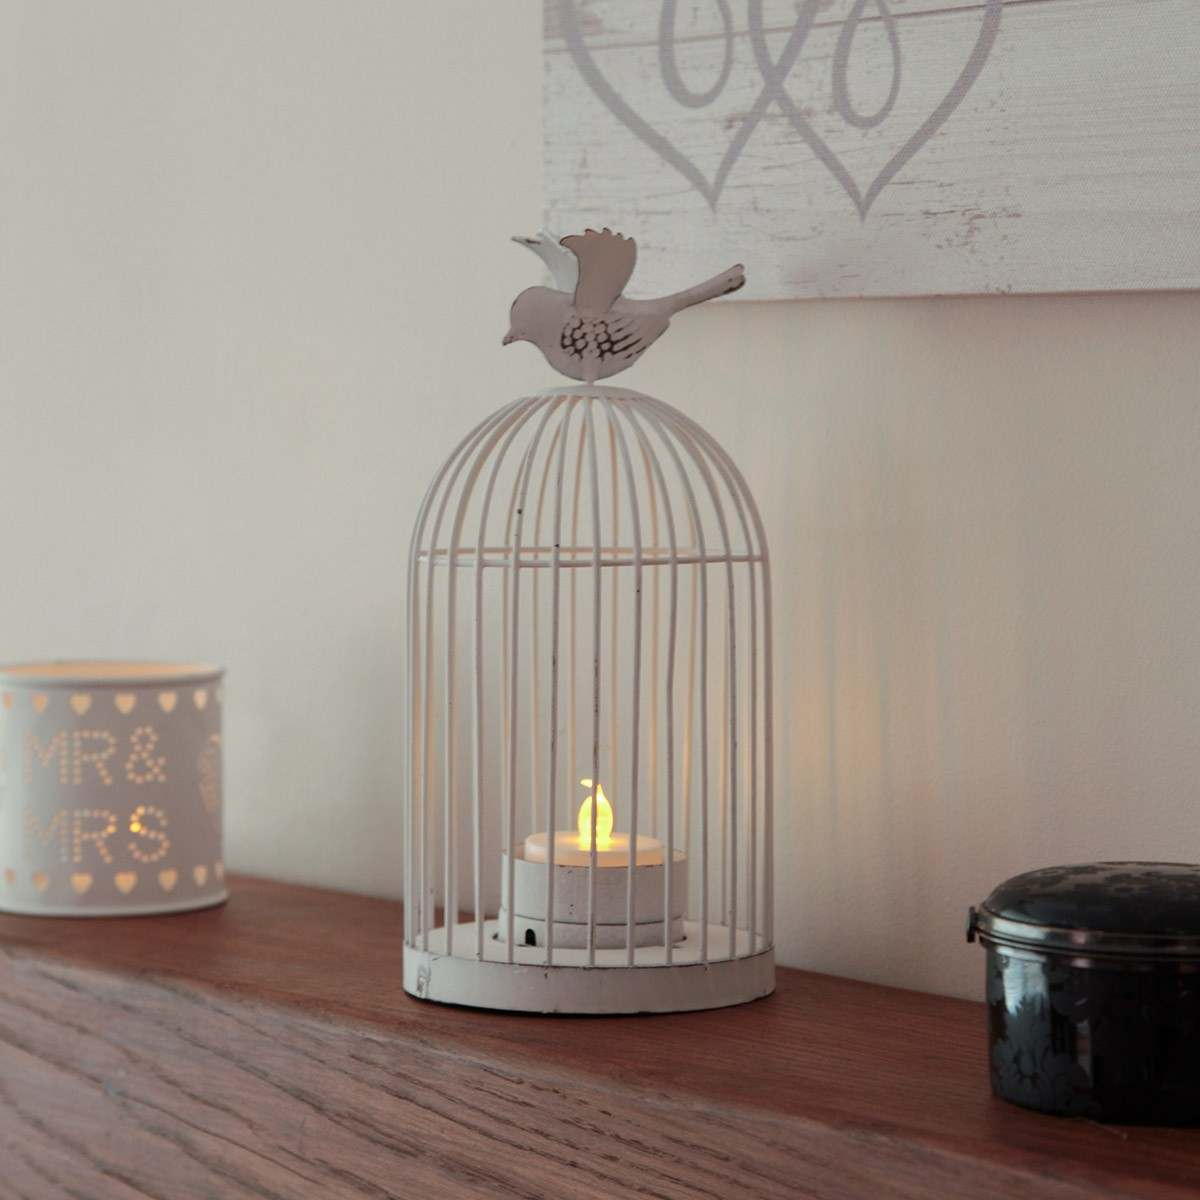 Shabby Chic Bird Cage Tea Light Holder With Tea Light 24cm